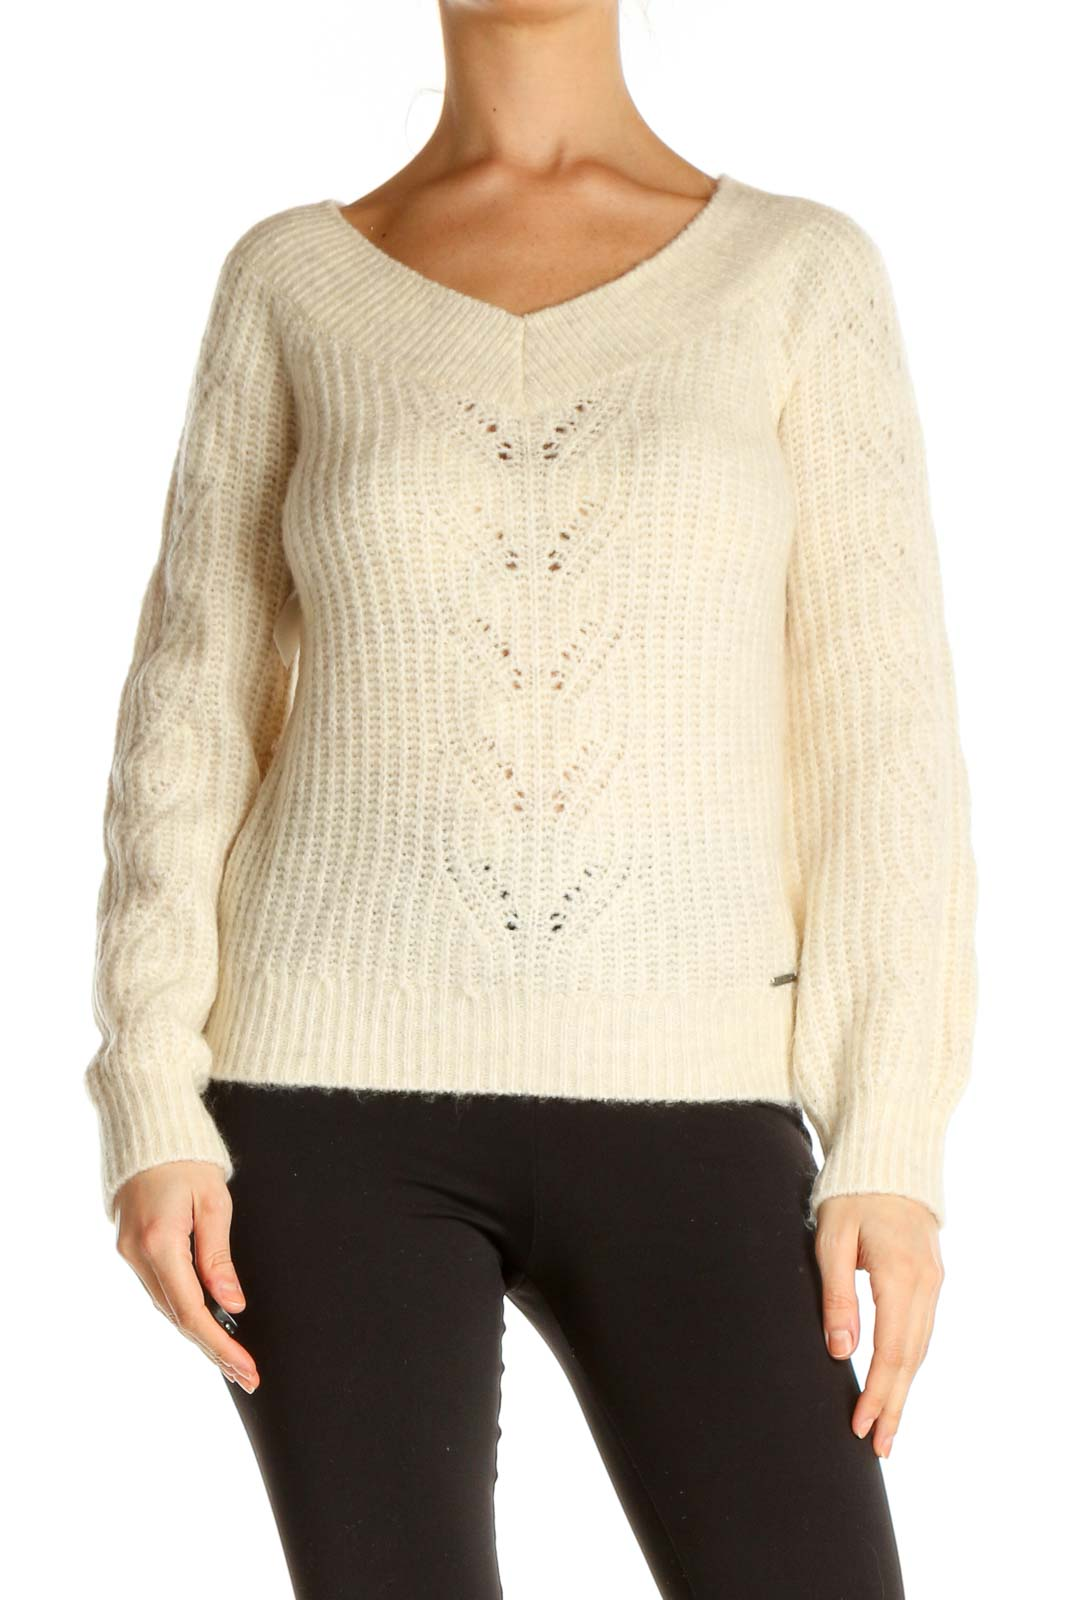 Beige Textured All Day Wear Sweater Front